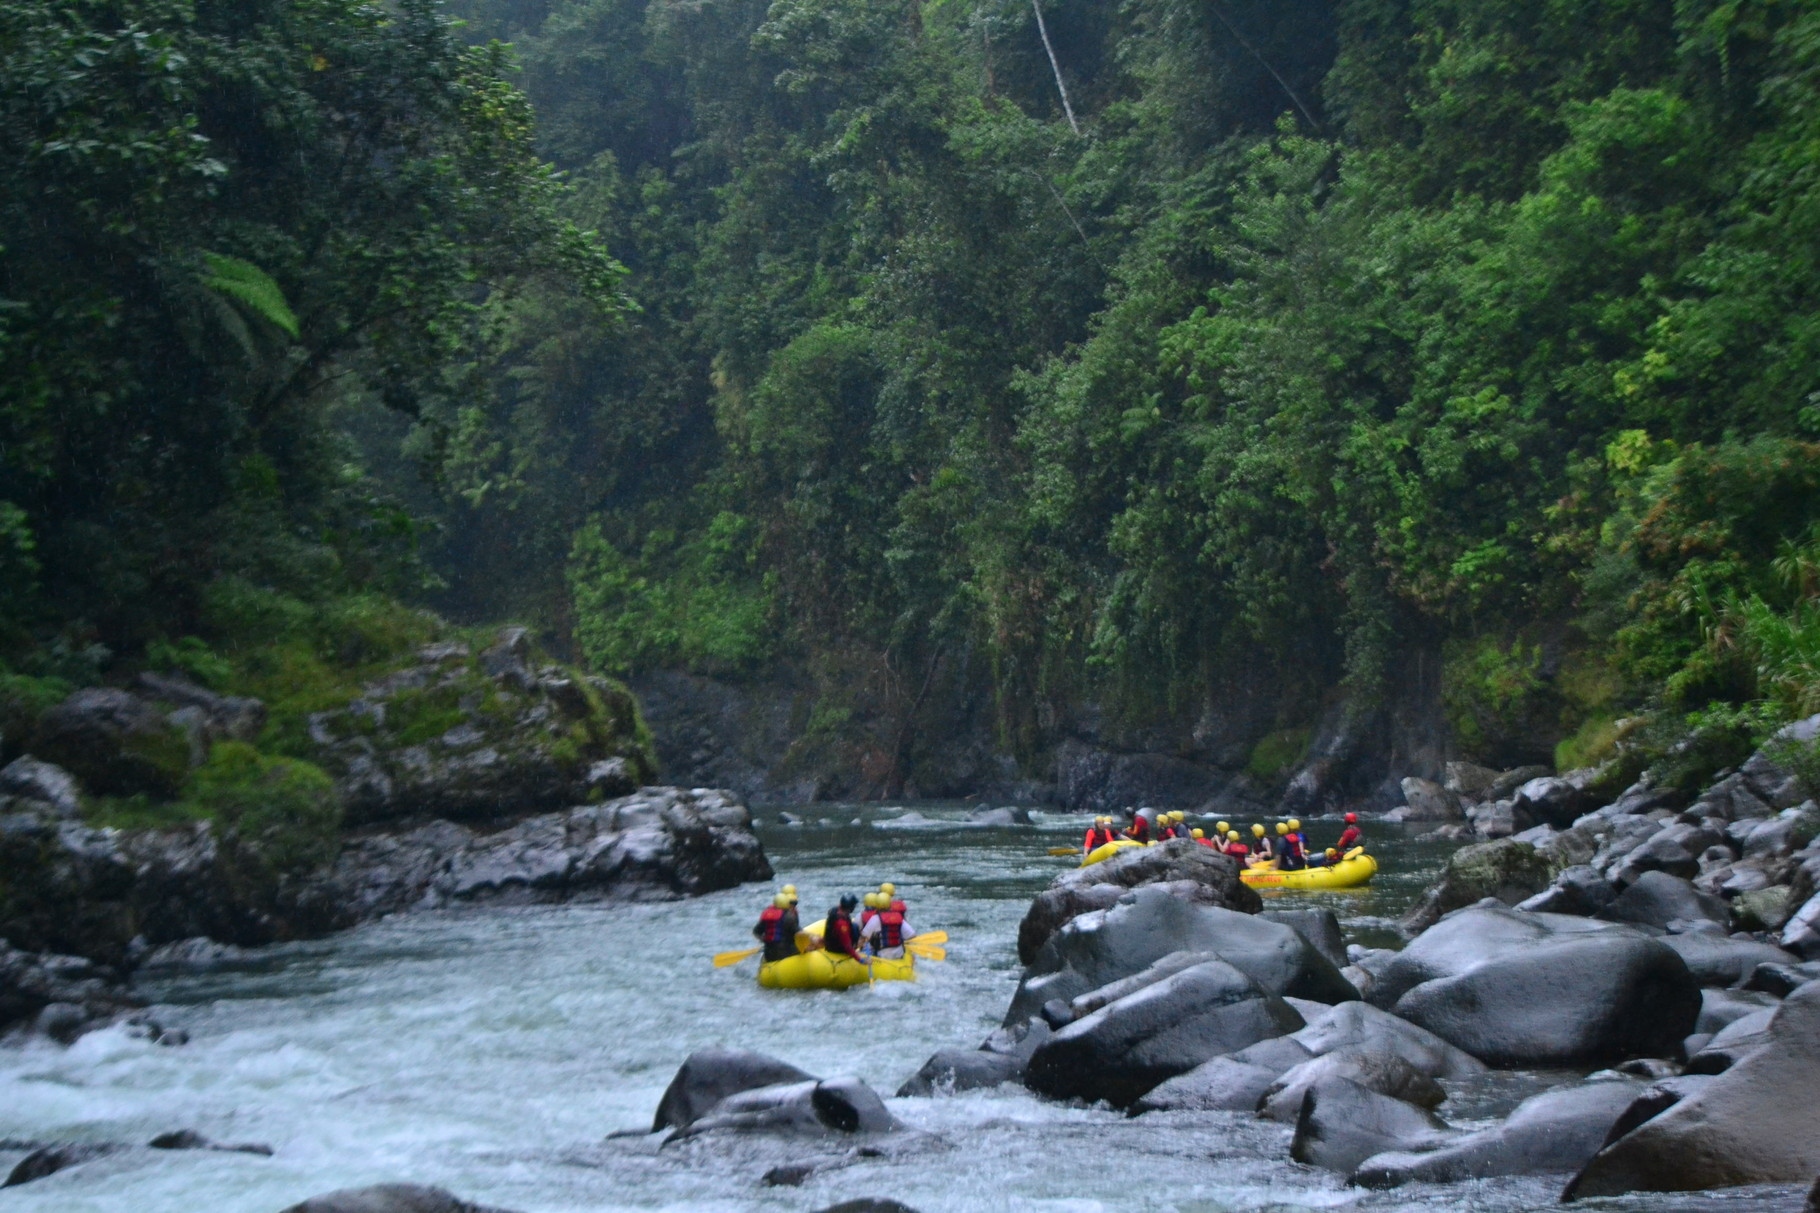 The Pacuare River runs through the Costa Rican rain forest